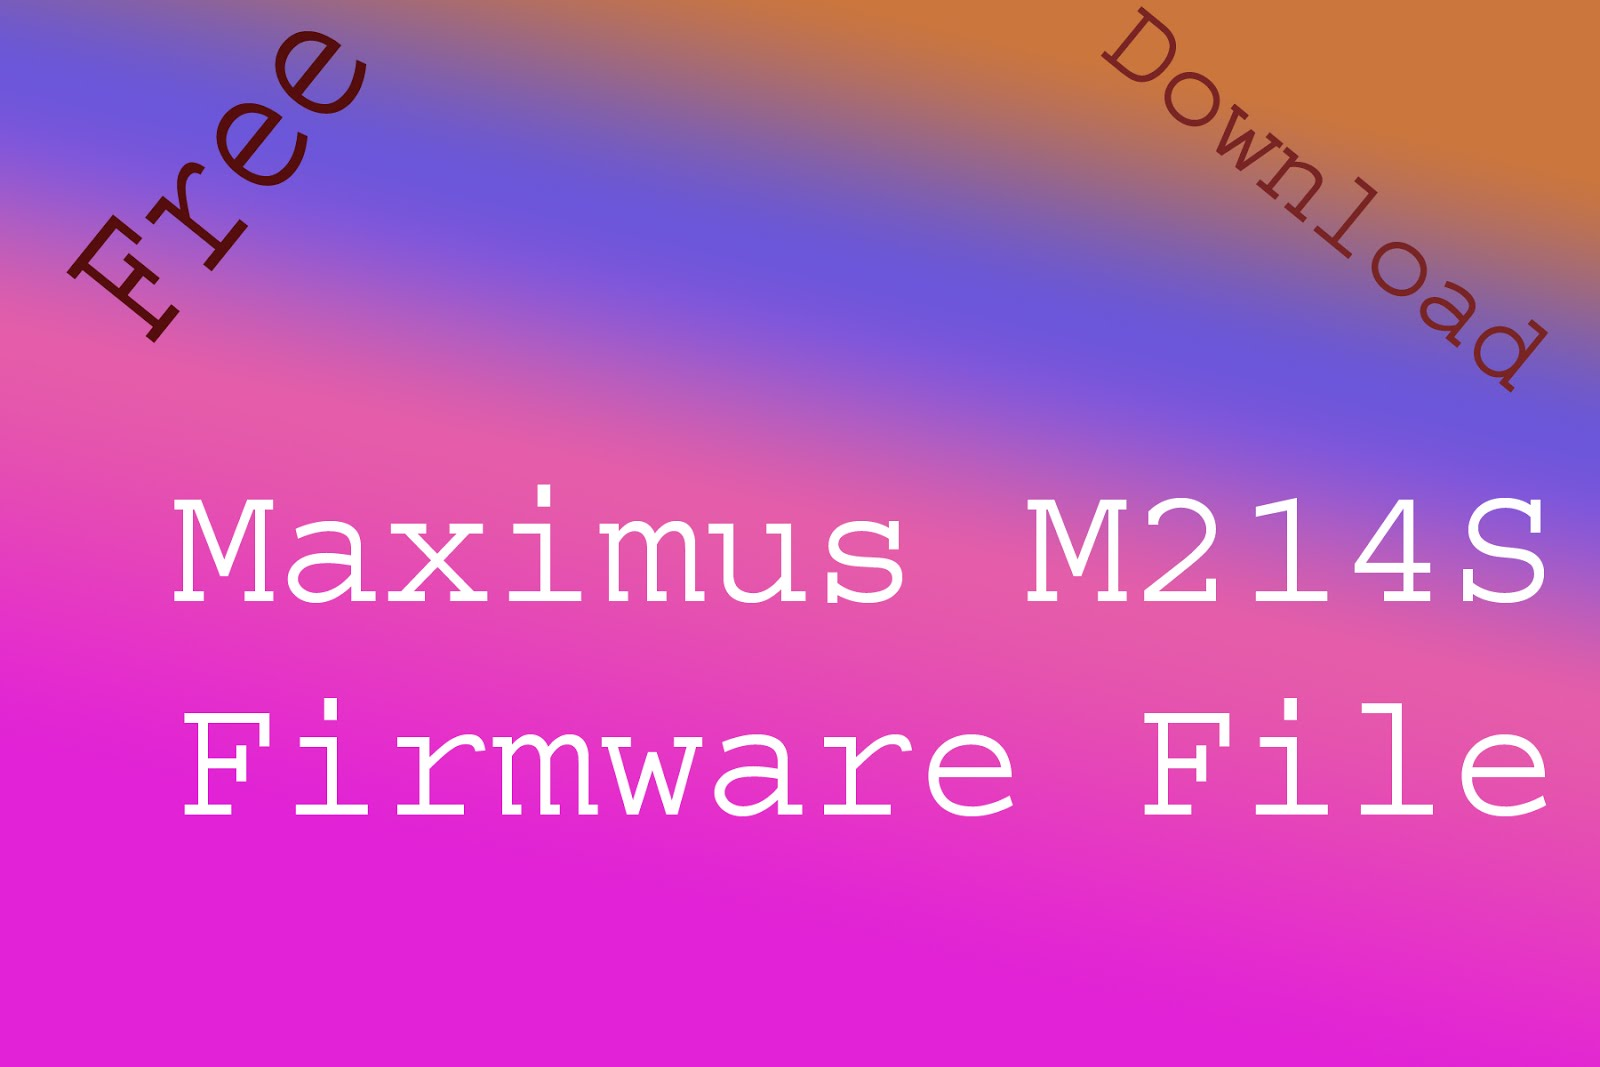 Maximus M214s Firmware File without password